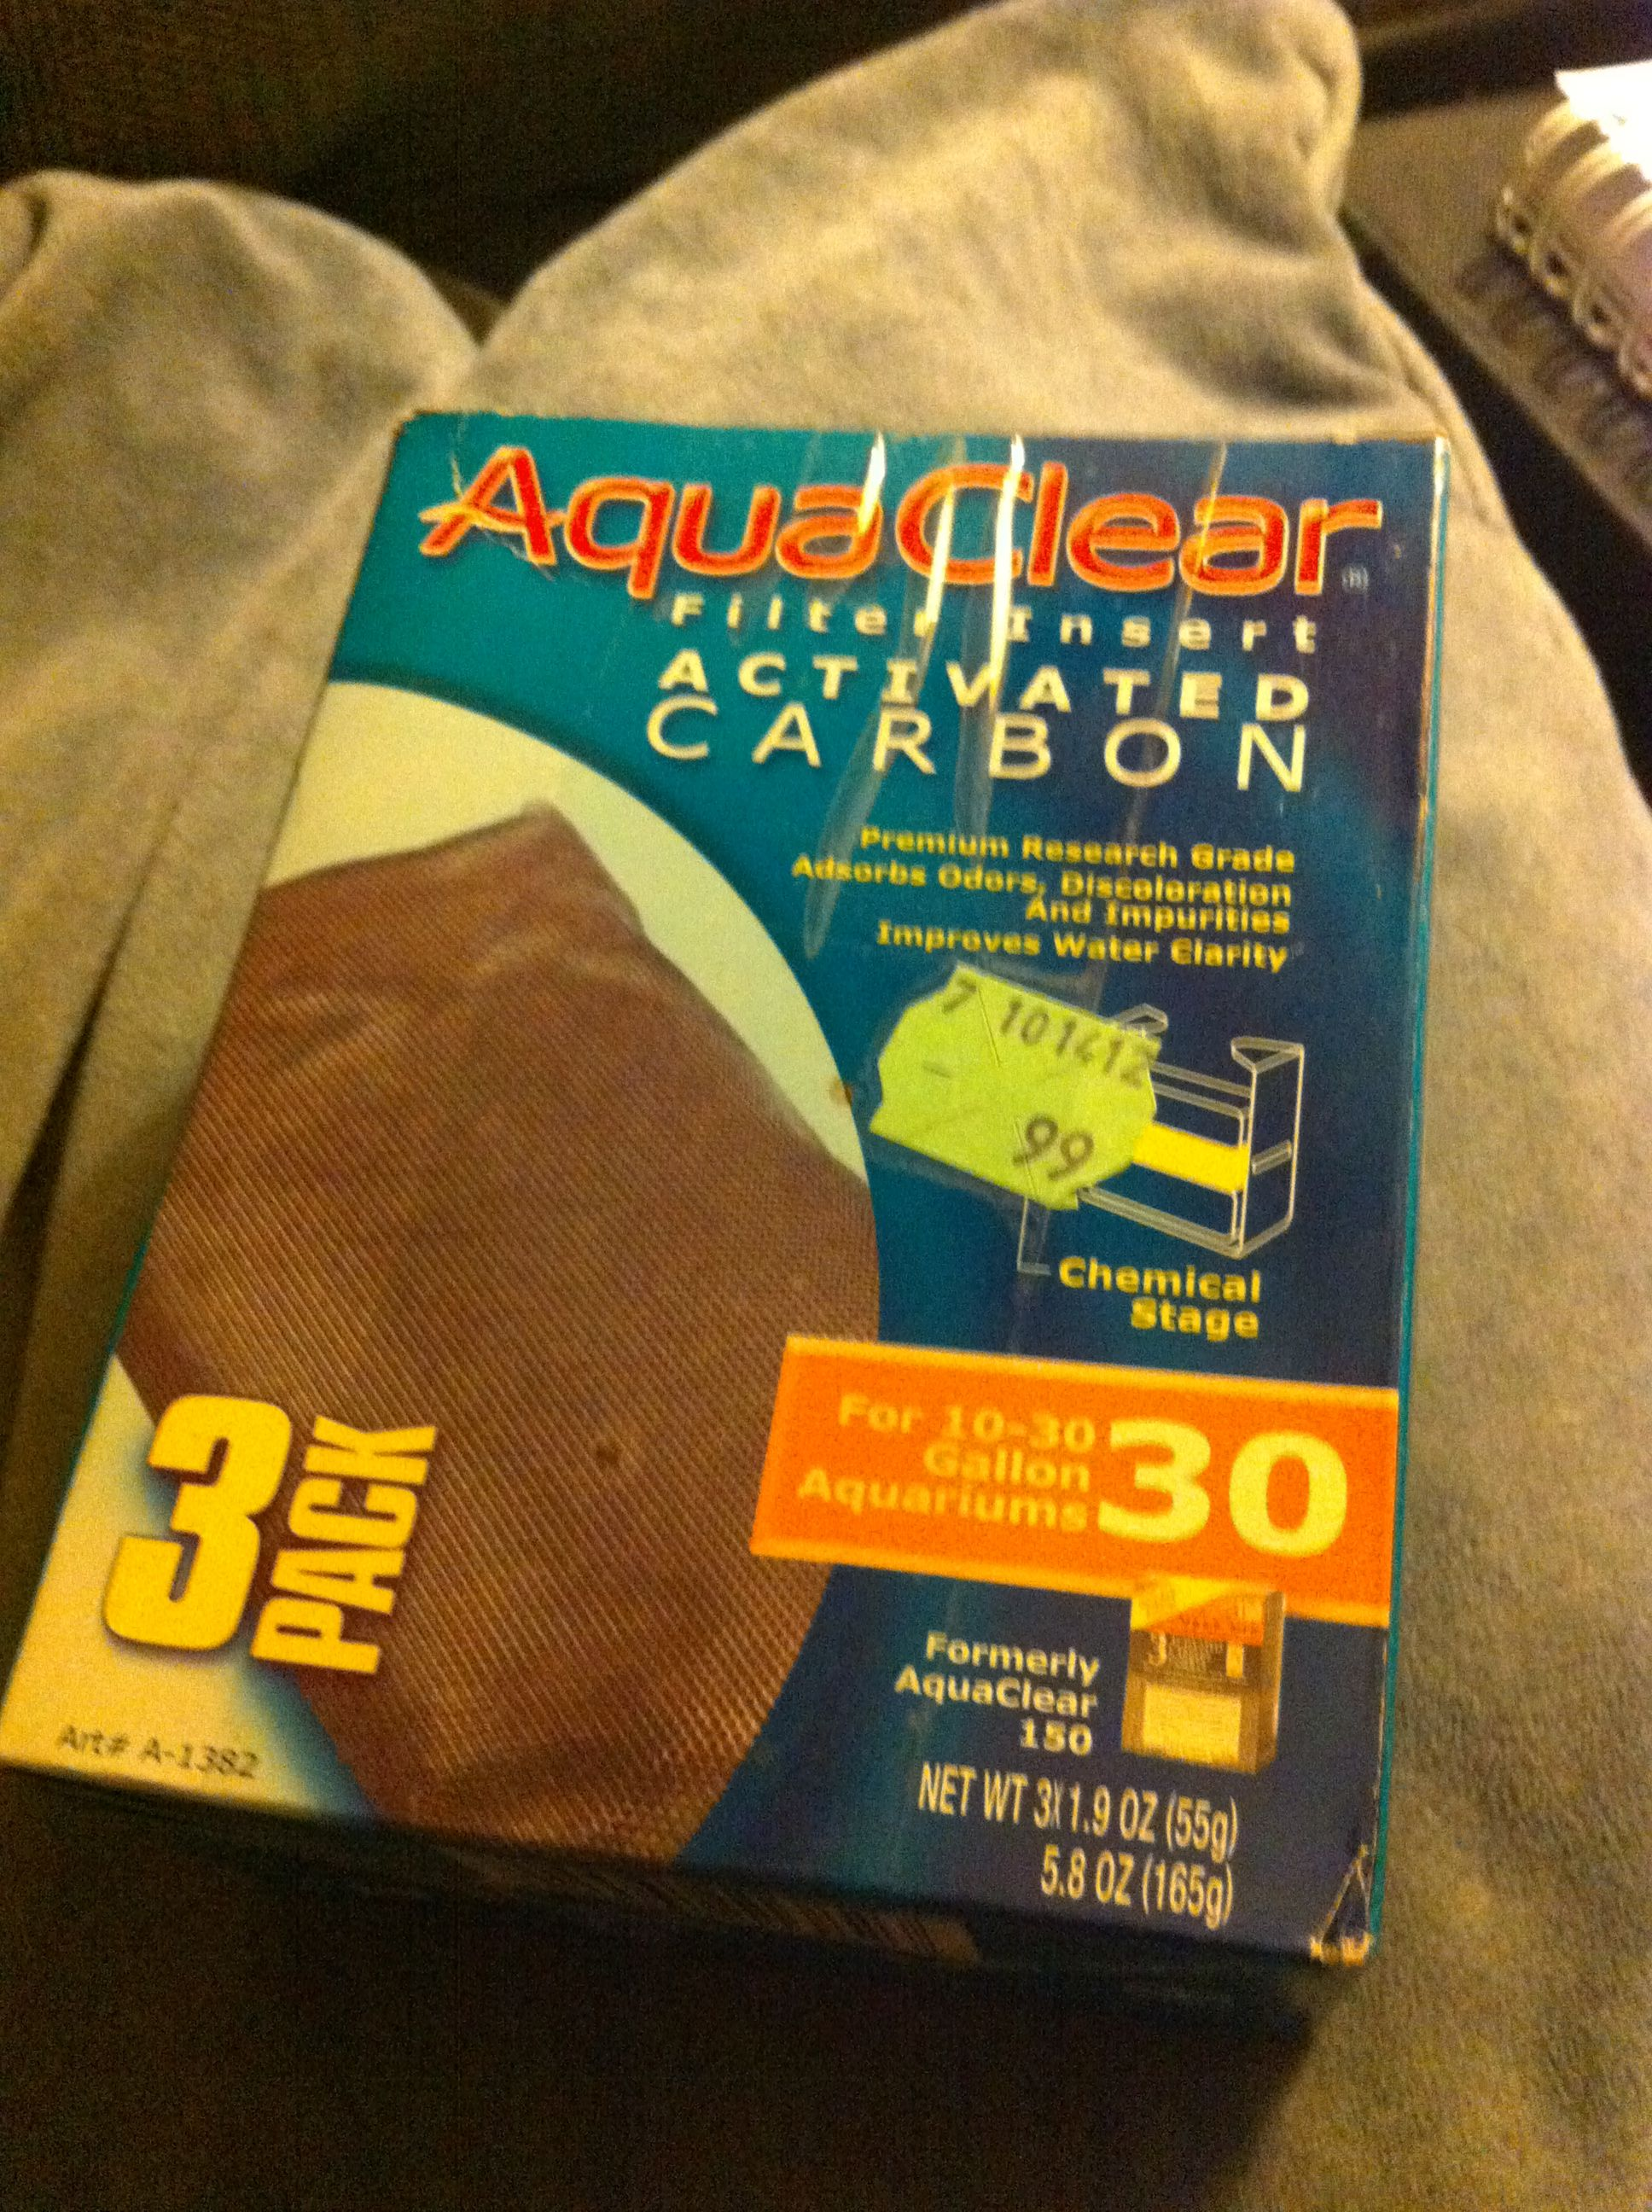 $.99 Aqua Clear activated charcoal filters for fish tanks